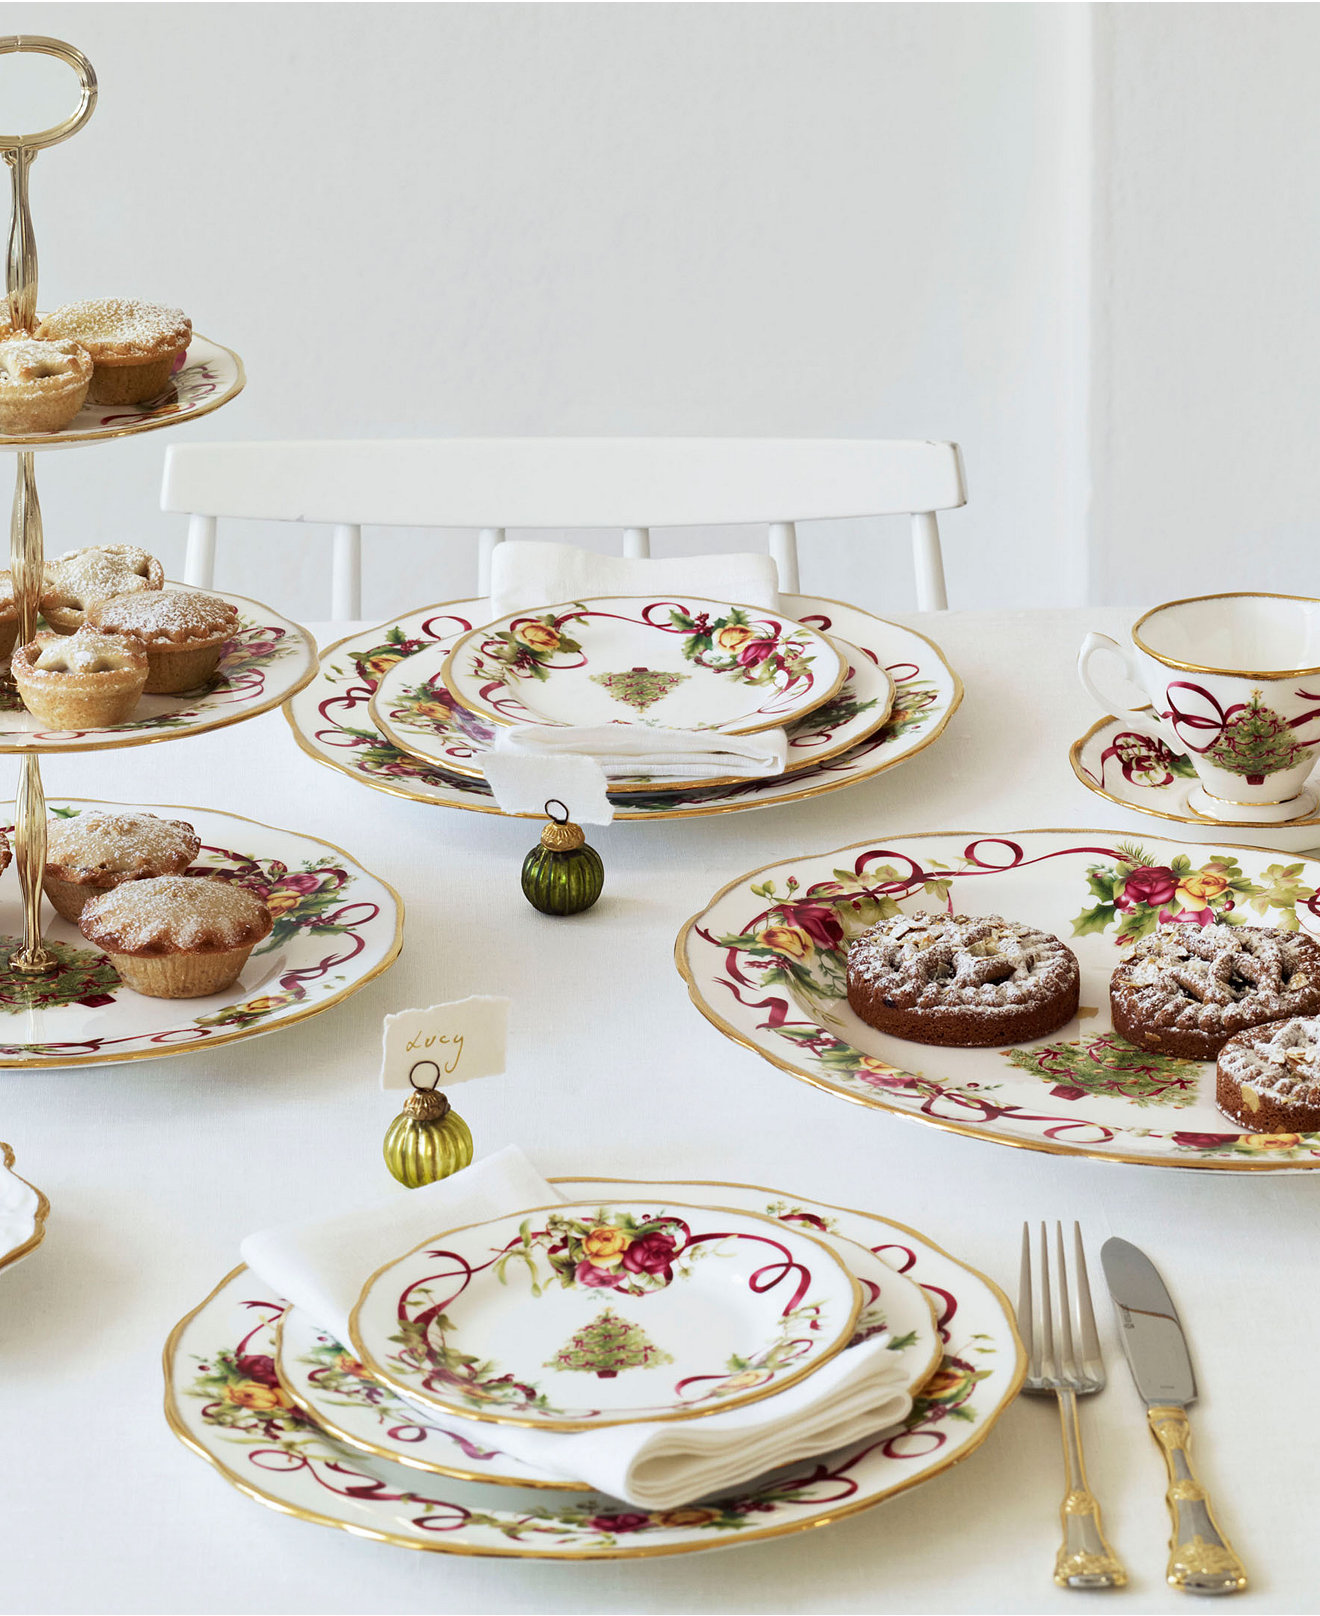 Inspiring Christmas Dinnerware For Christmas Decorating Ideas With Christmas Dinnerware Sets Clearance & Kitchen u0026 Dining Sets: Inspiring Christmas Dinnerware For Christmas ...